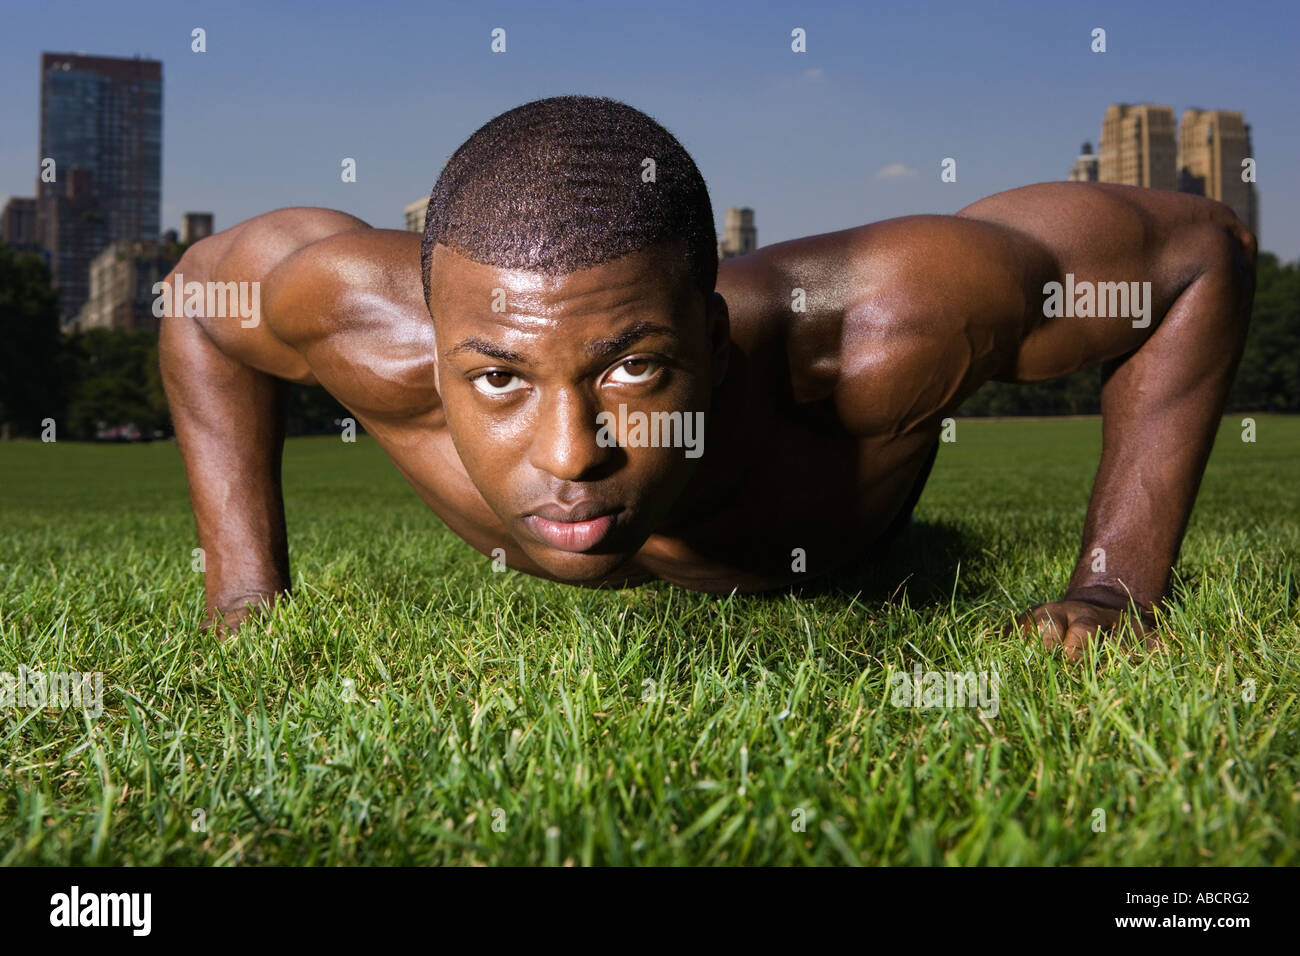 Man doing press ups dans le parc Photo Stock